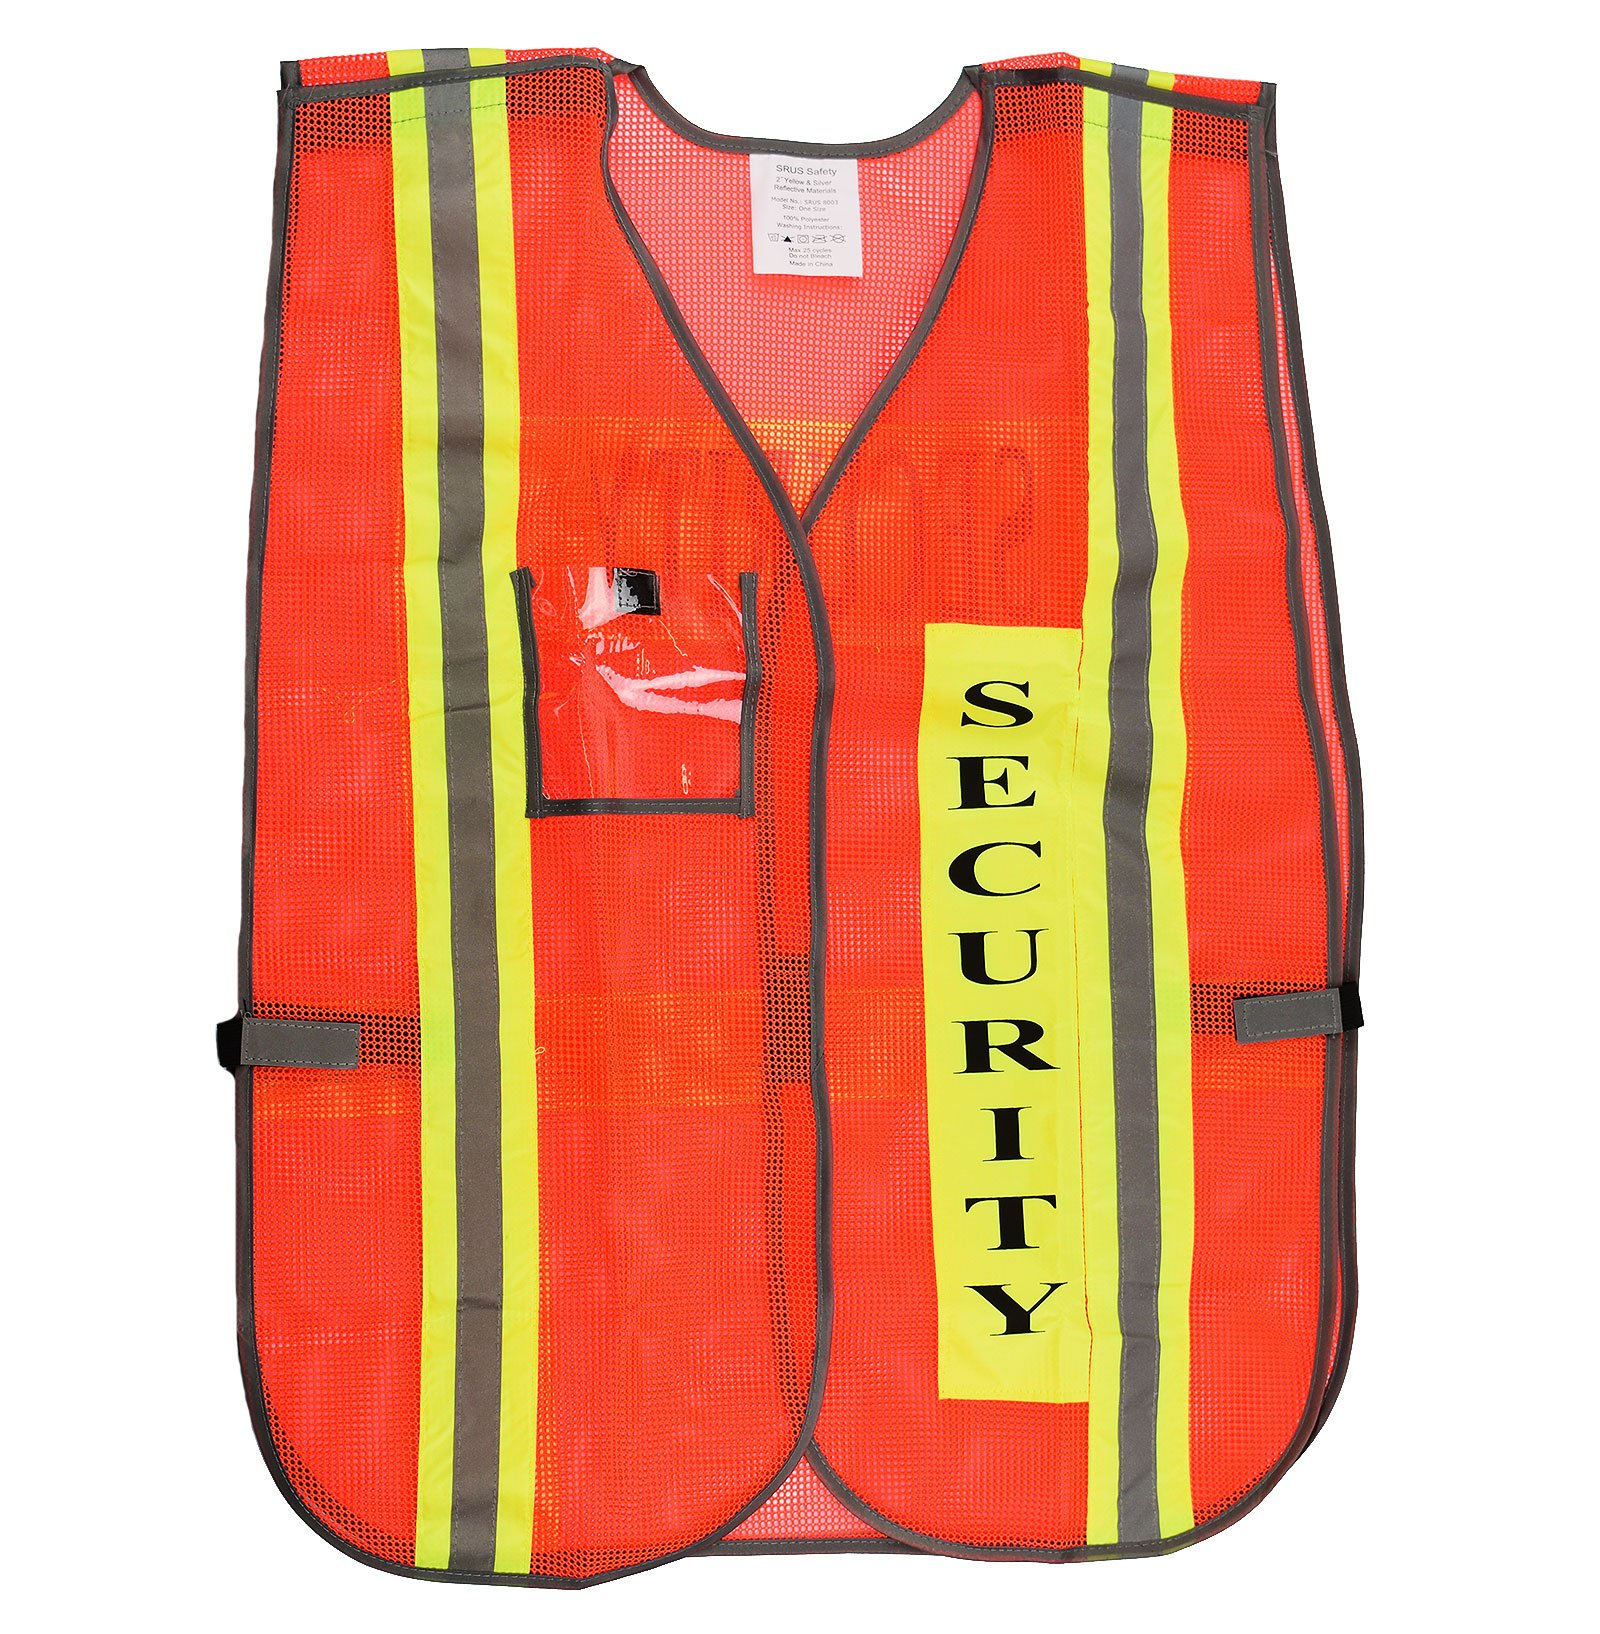 (Box Deal) 8003, Security Safety Vest with Reflective Strips, One Size Fits All (50-Pack, Neon Orange)